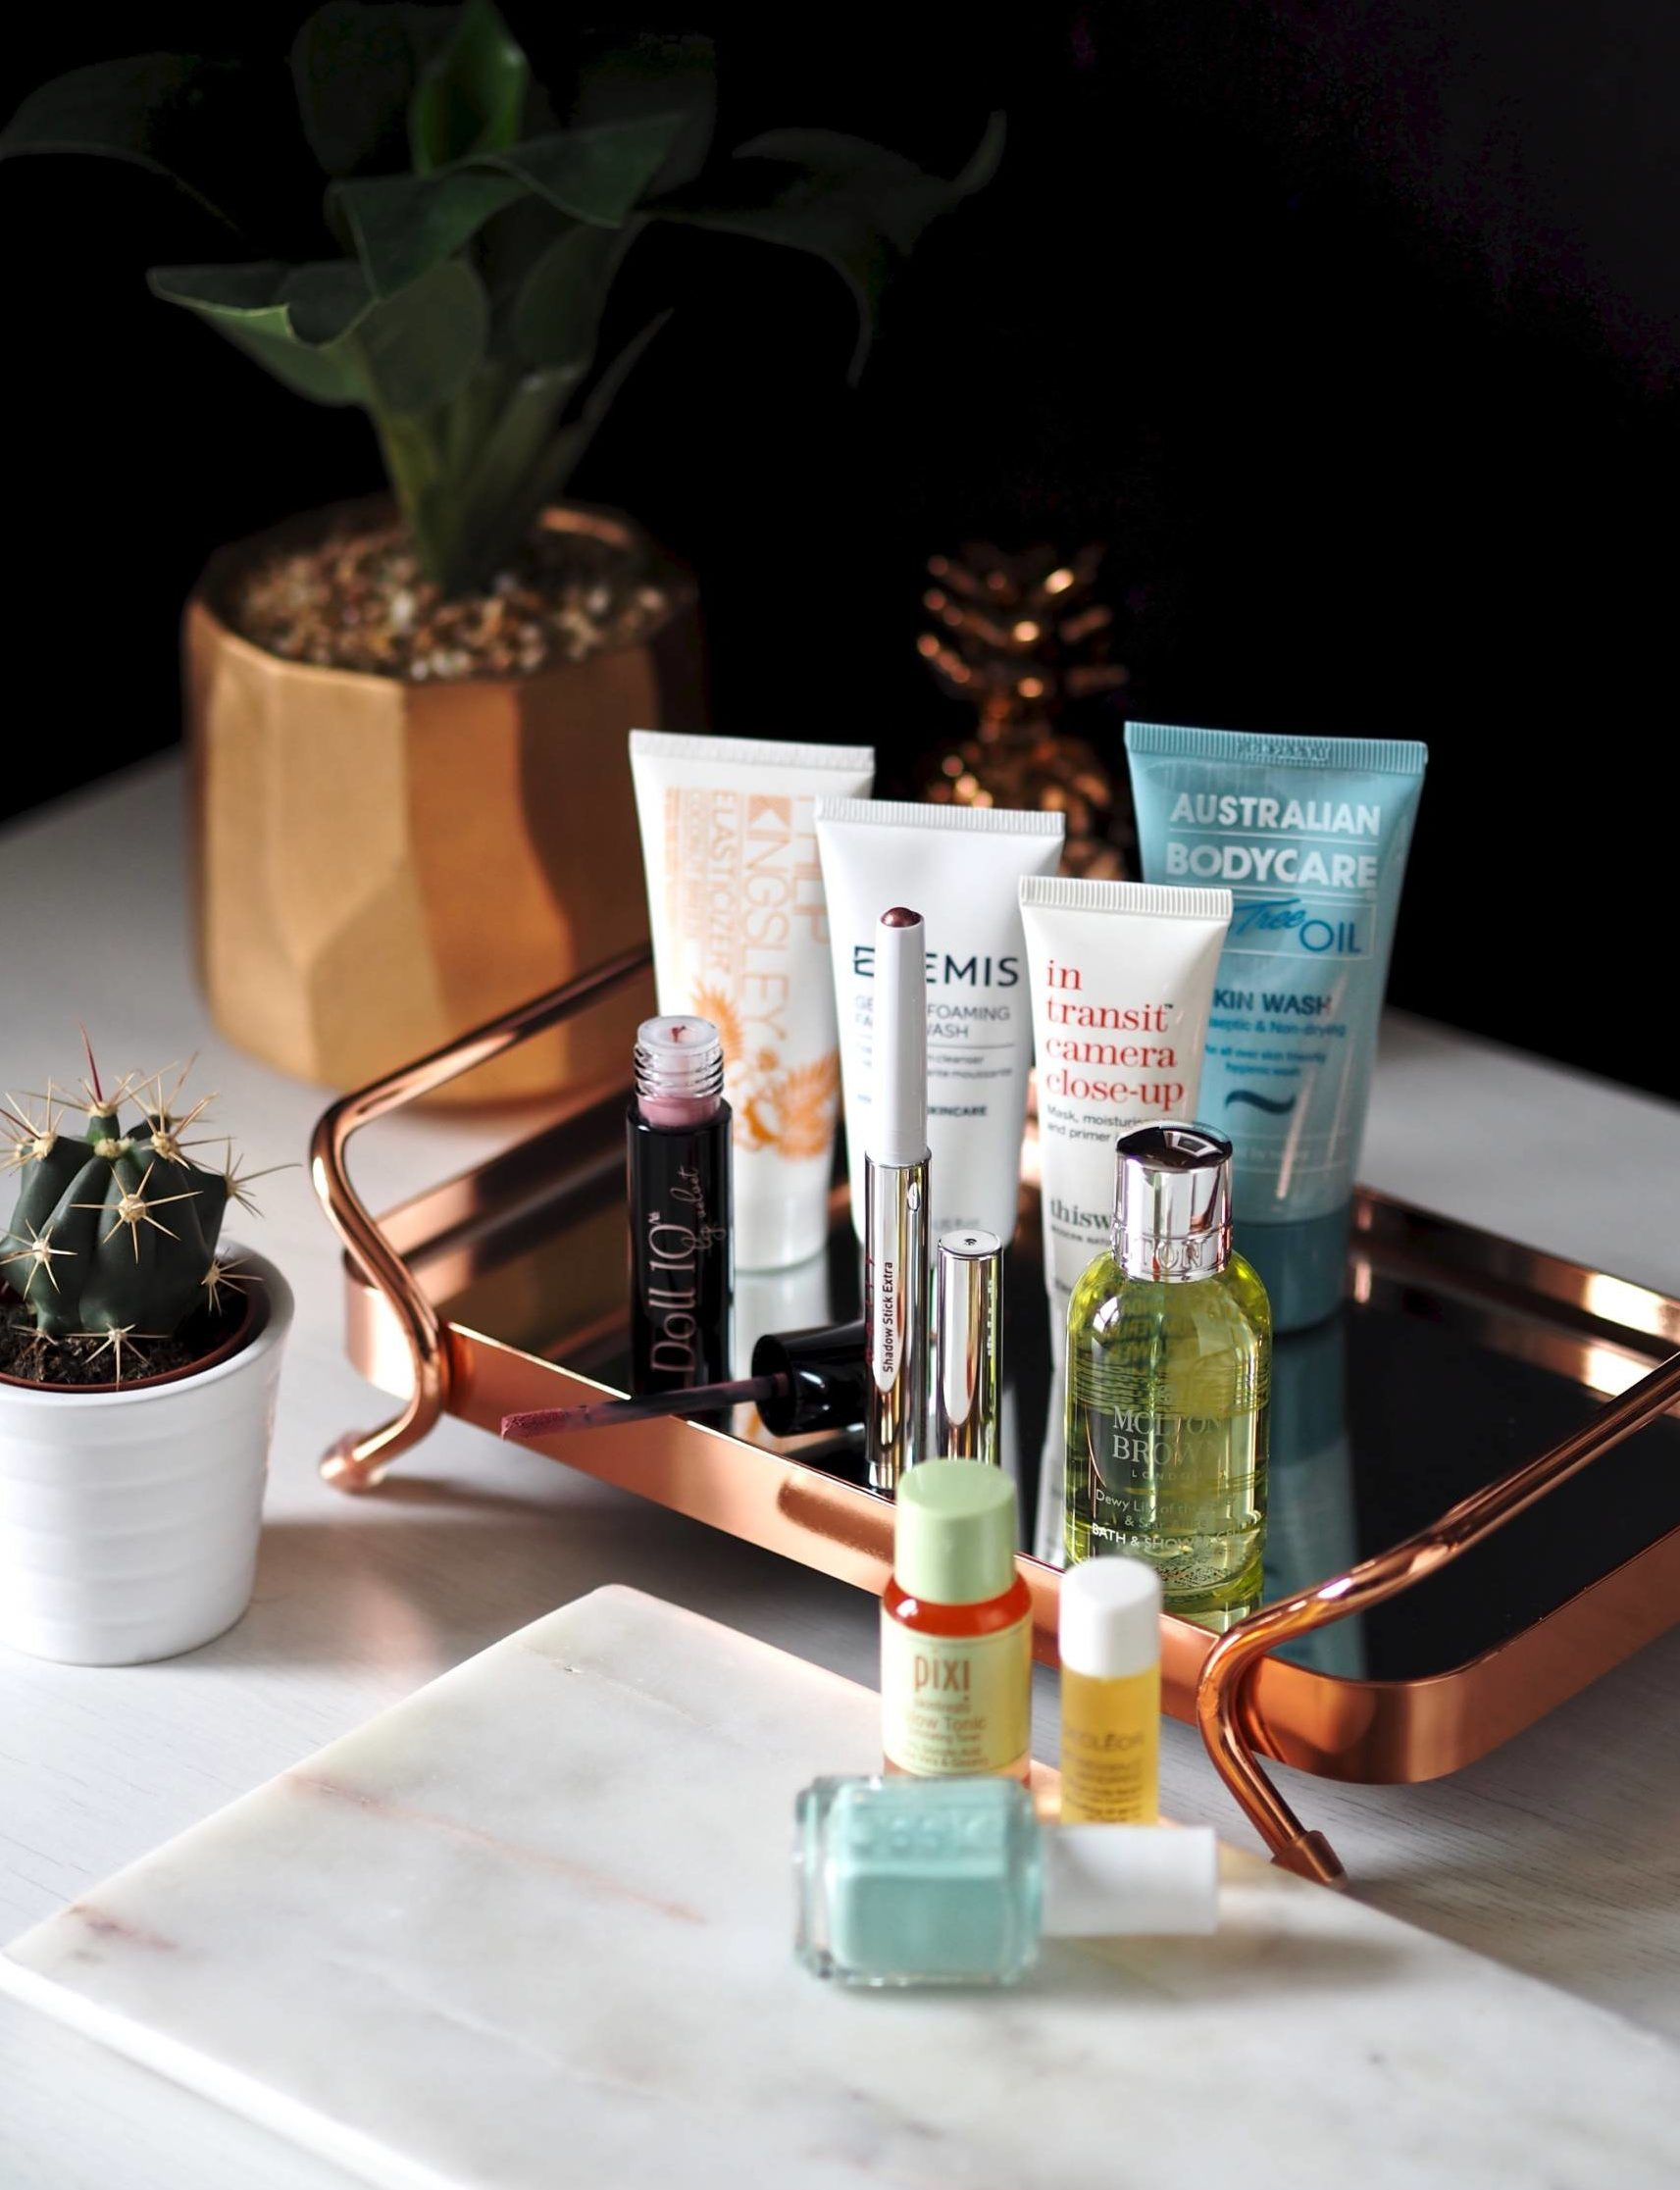 TILI-BEAUTY-BOX-QVC-No-Subscription-Beauty-Box-Blogger-LAFOTKA